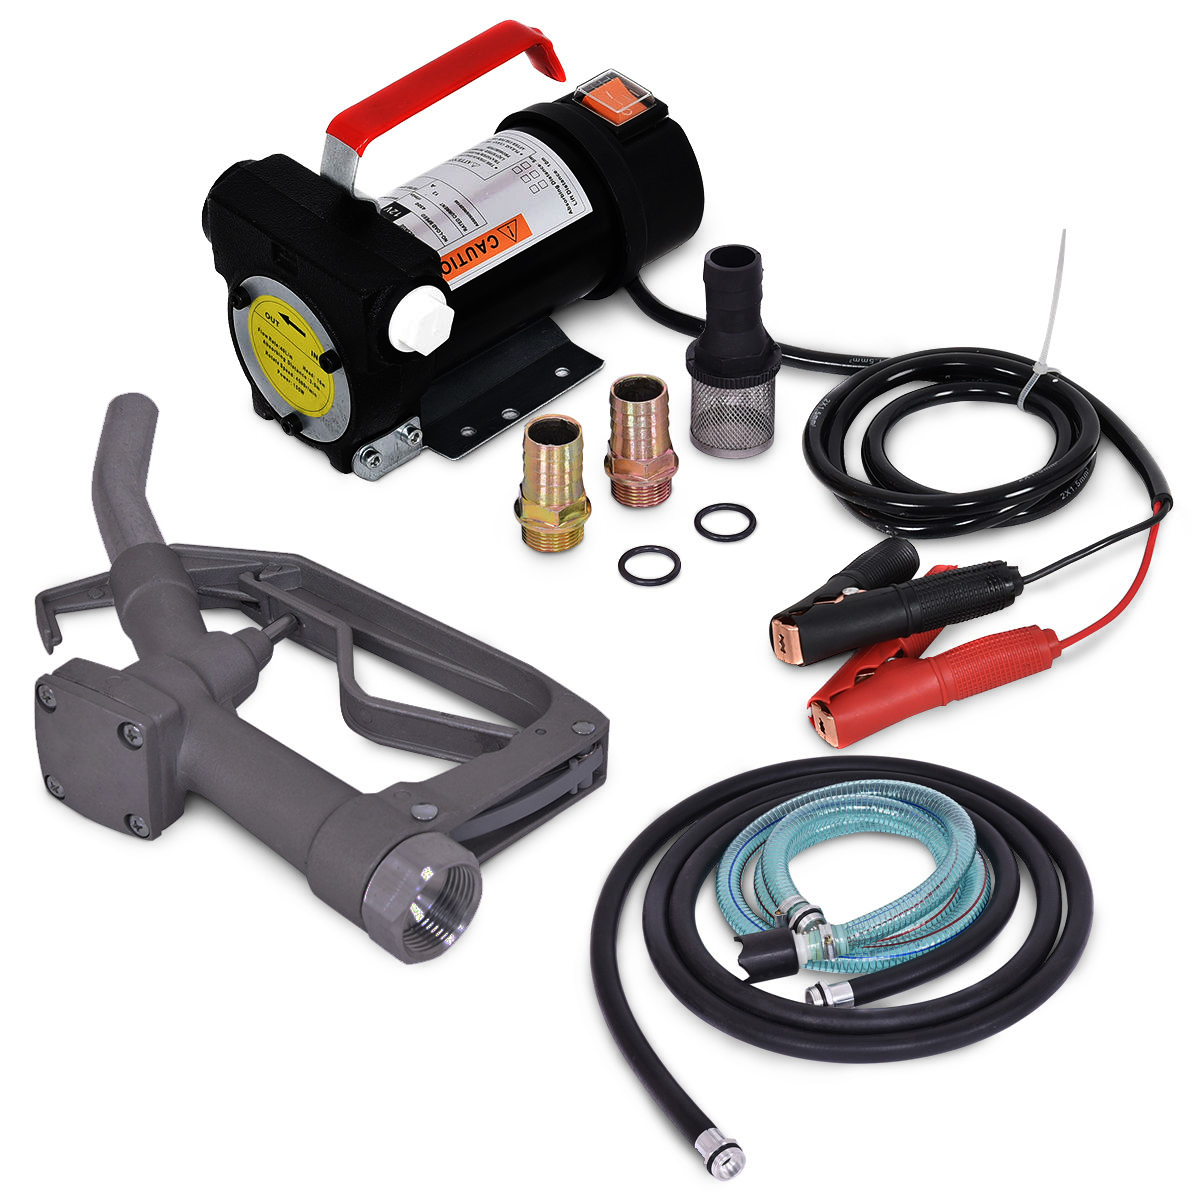 ARKSEN 12V 10GPM Electric Diesel Fuel Transfer Extractor Pump Battery Powered w/ Nozzle & Hose Kit